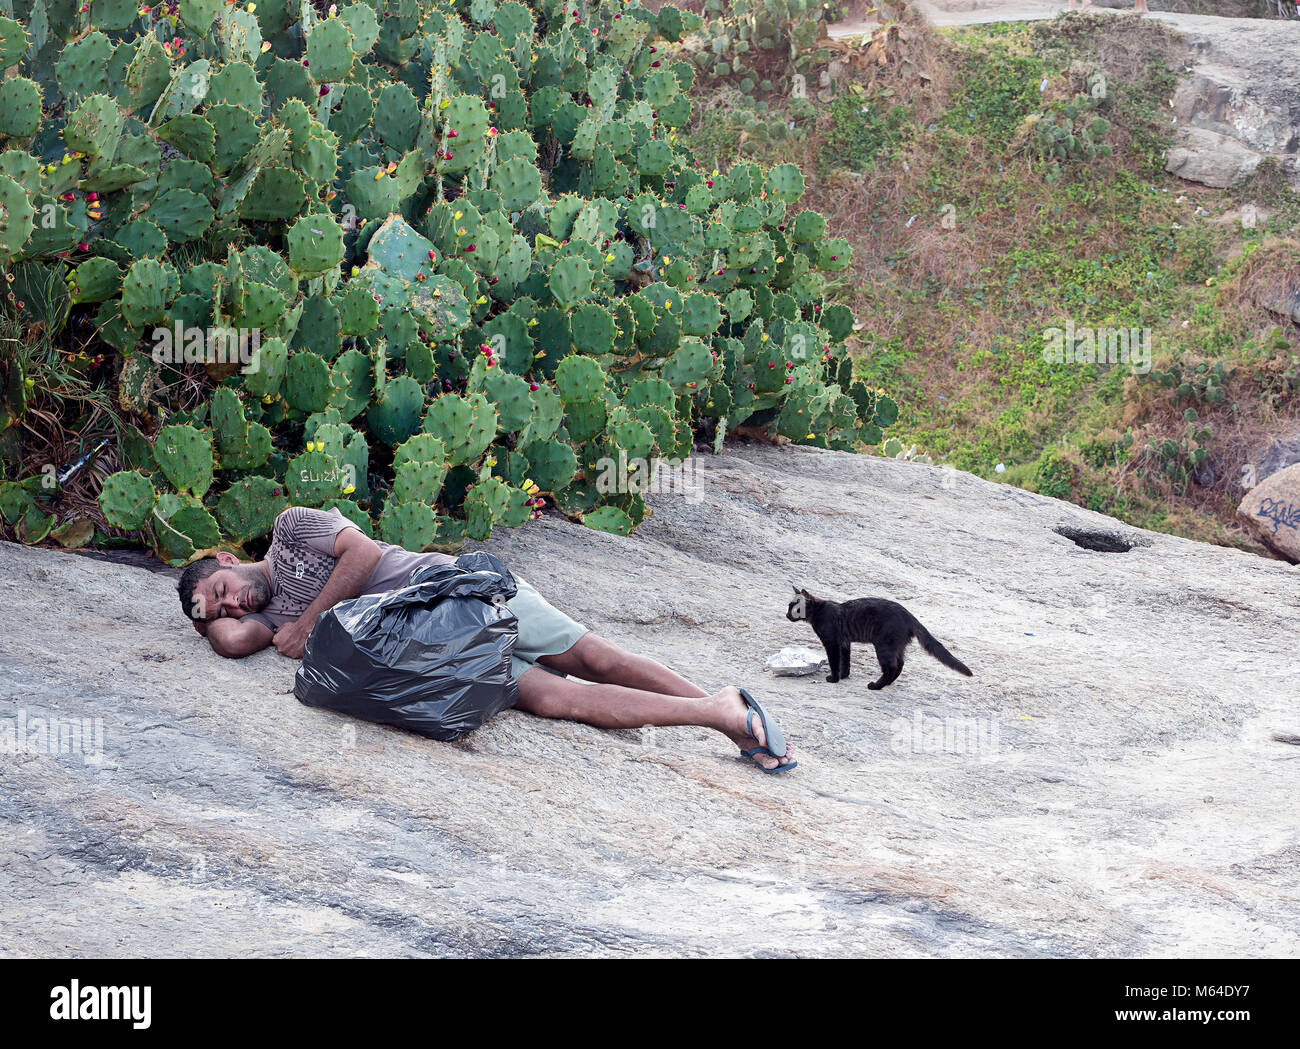 A black cat trying to steal food from a sleeping man - Stock Image